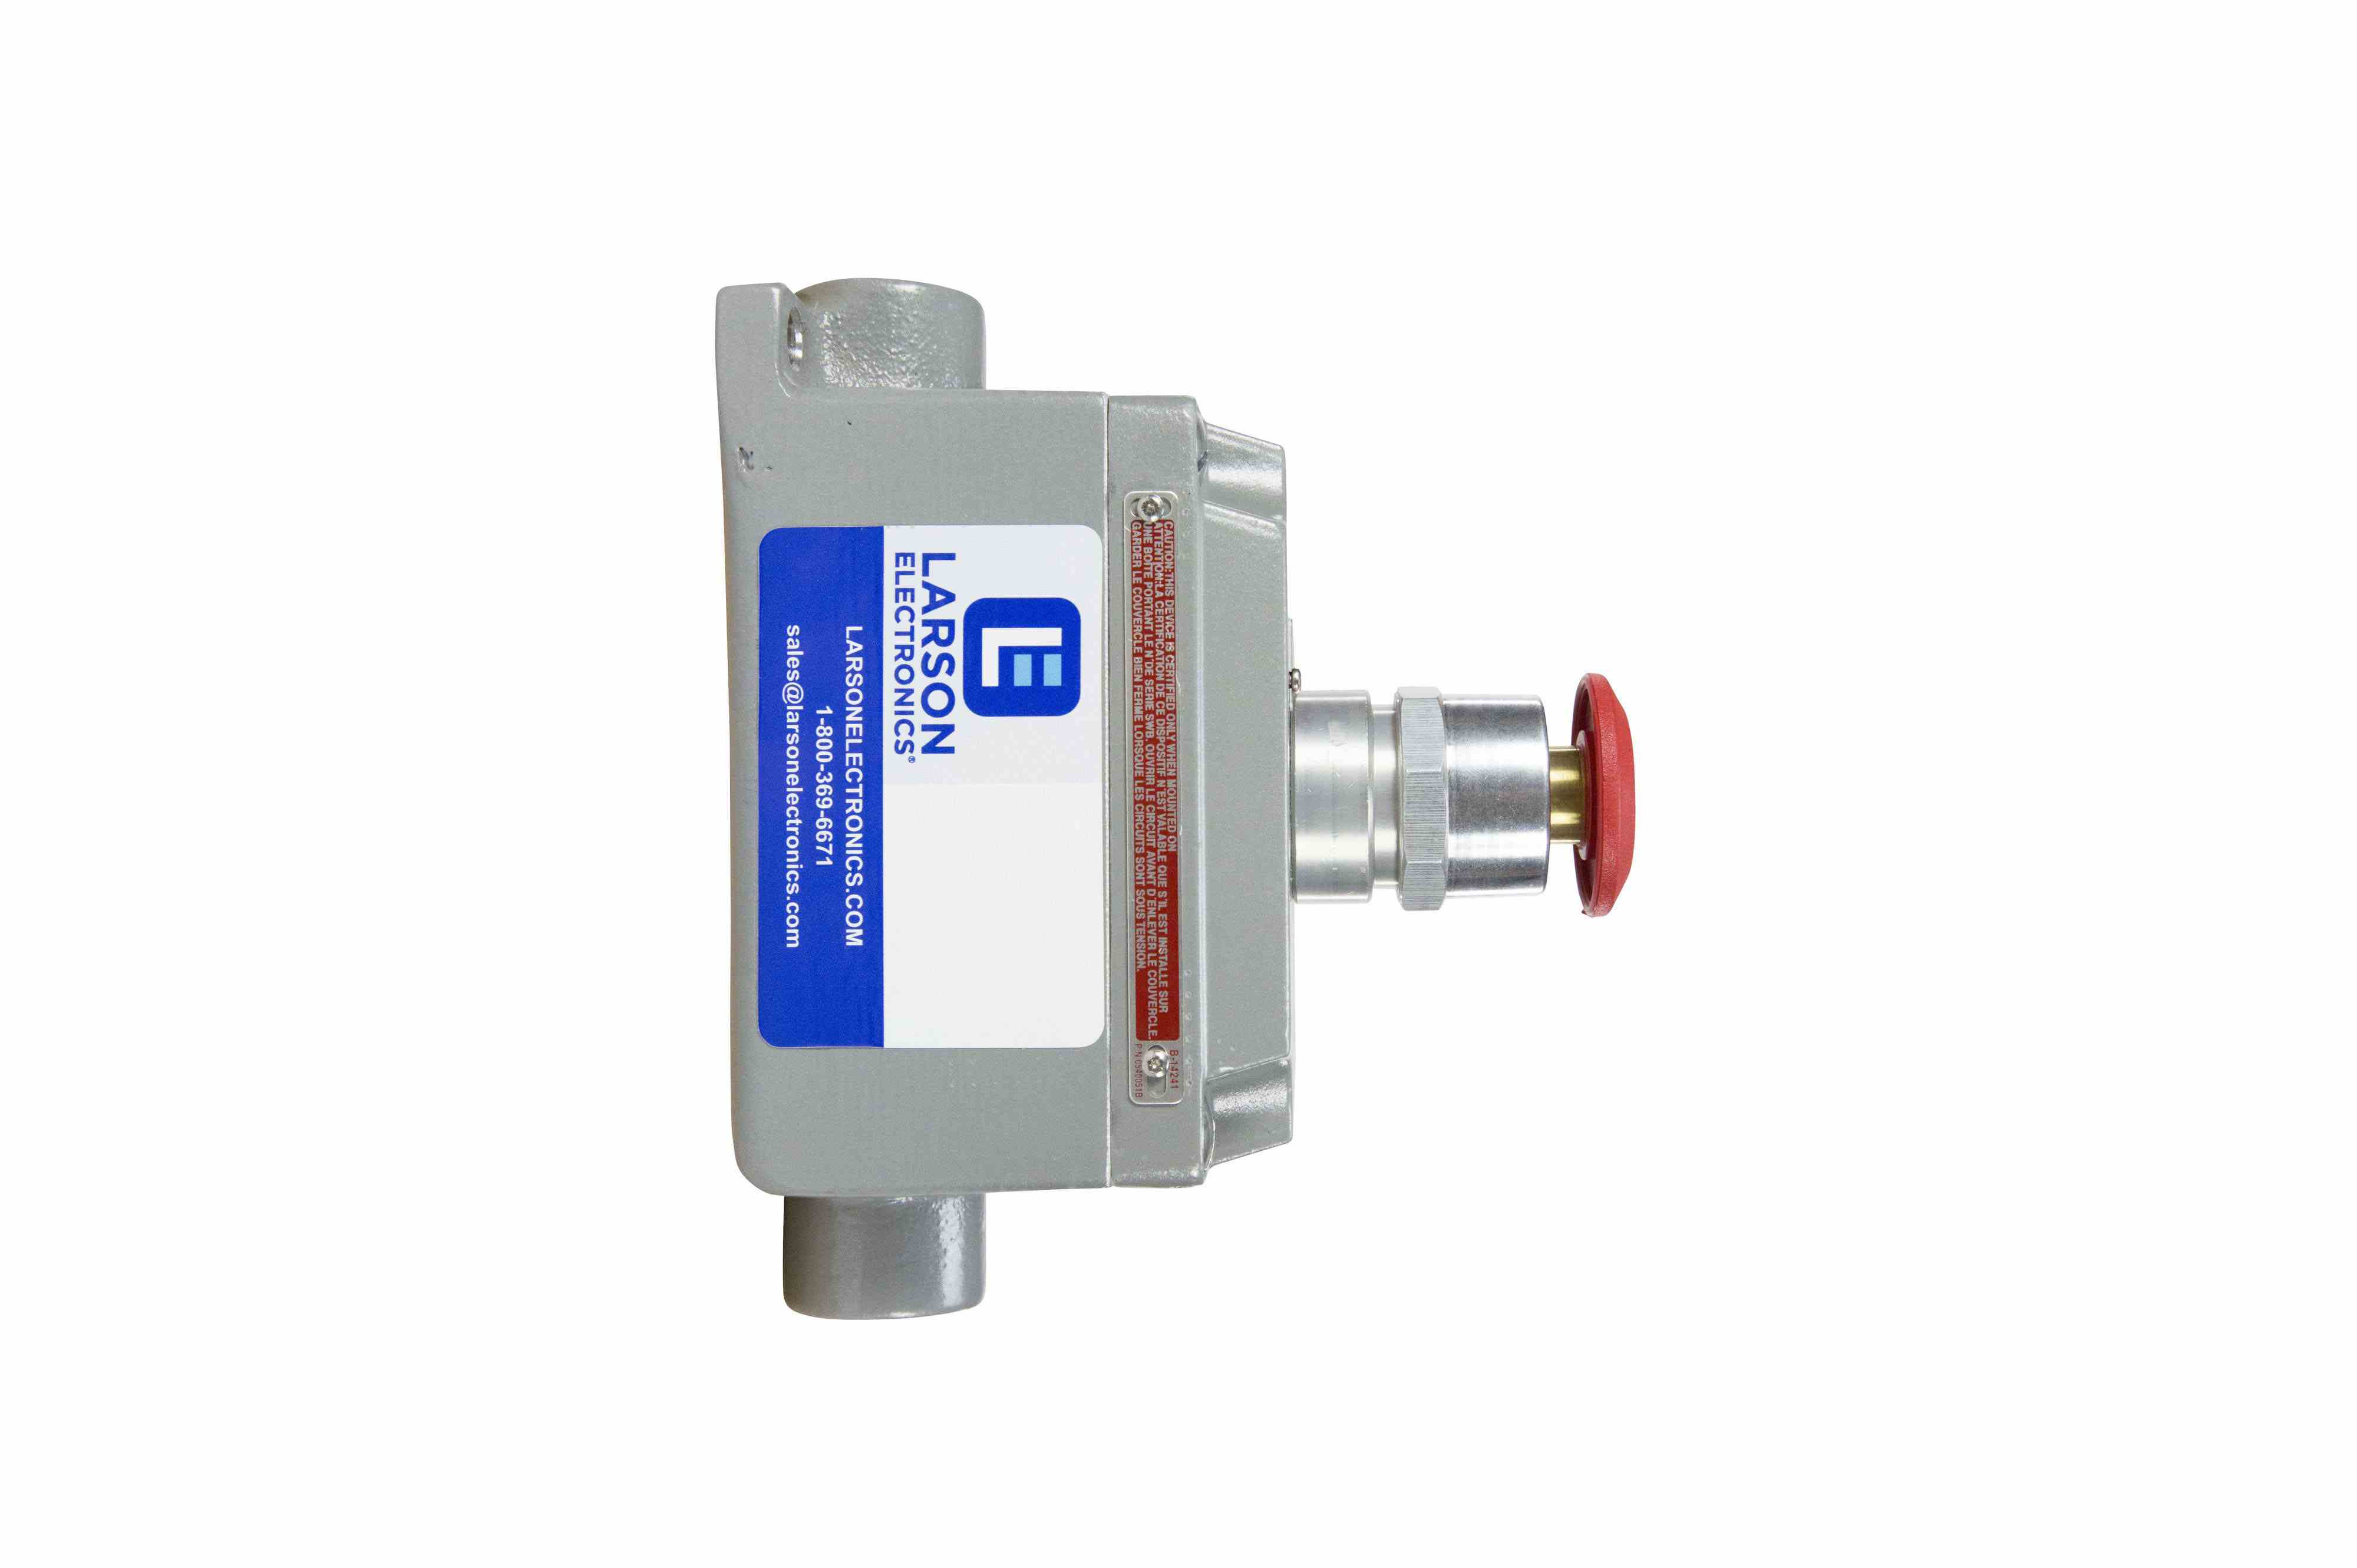 Explosion Proof 10 Amp Mushroom Push Button Switch Class I And Ii As Well 4 Pin Rocker Wiring Diagram Hi Res Image Side A